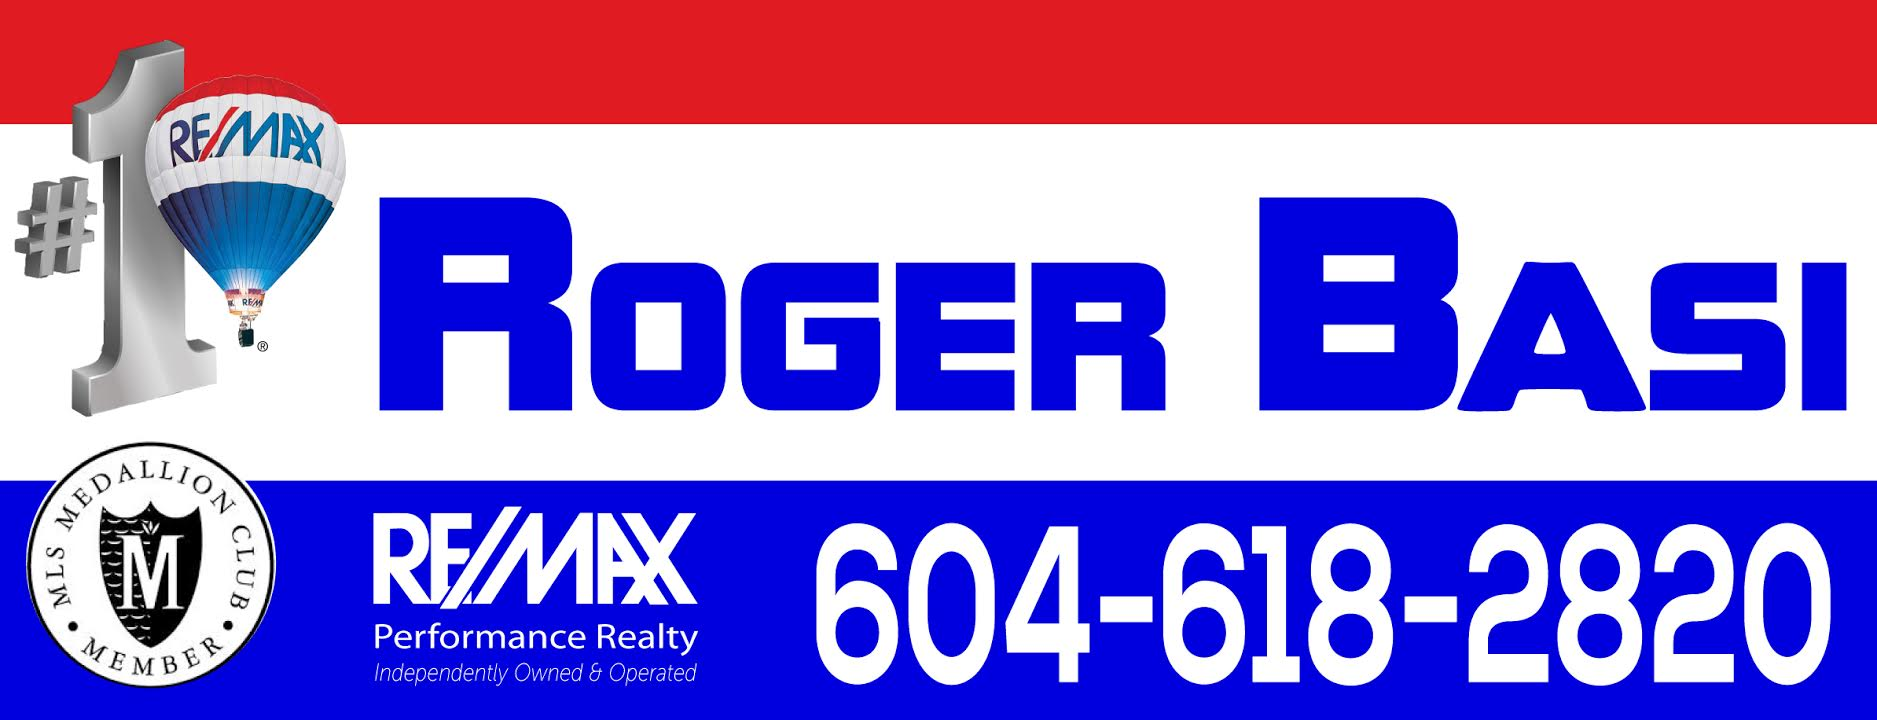 rogers realtor sign b